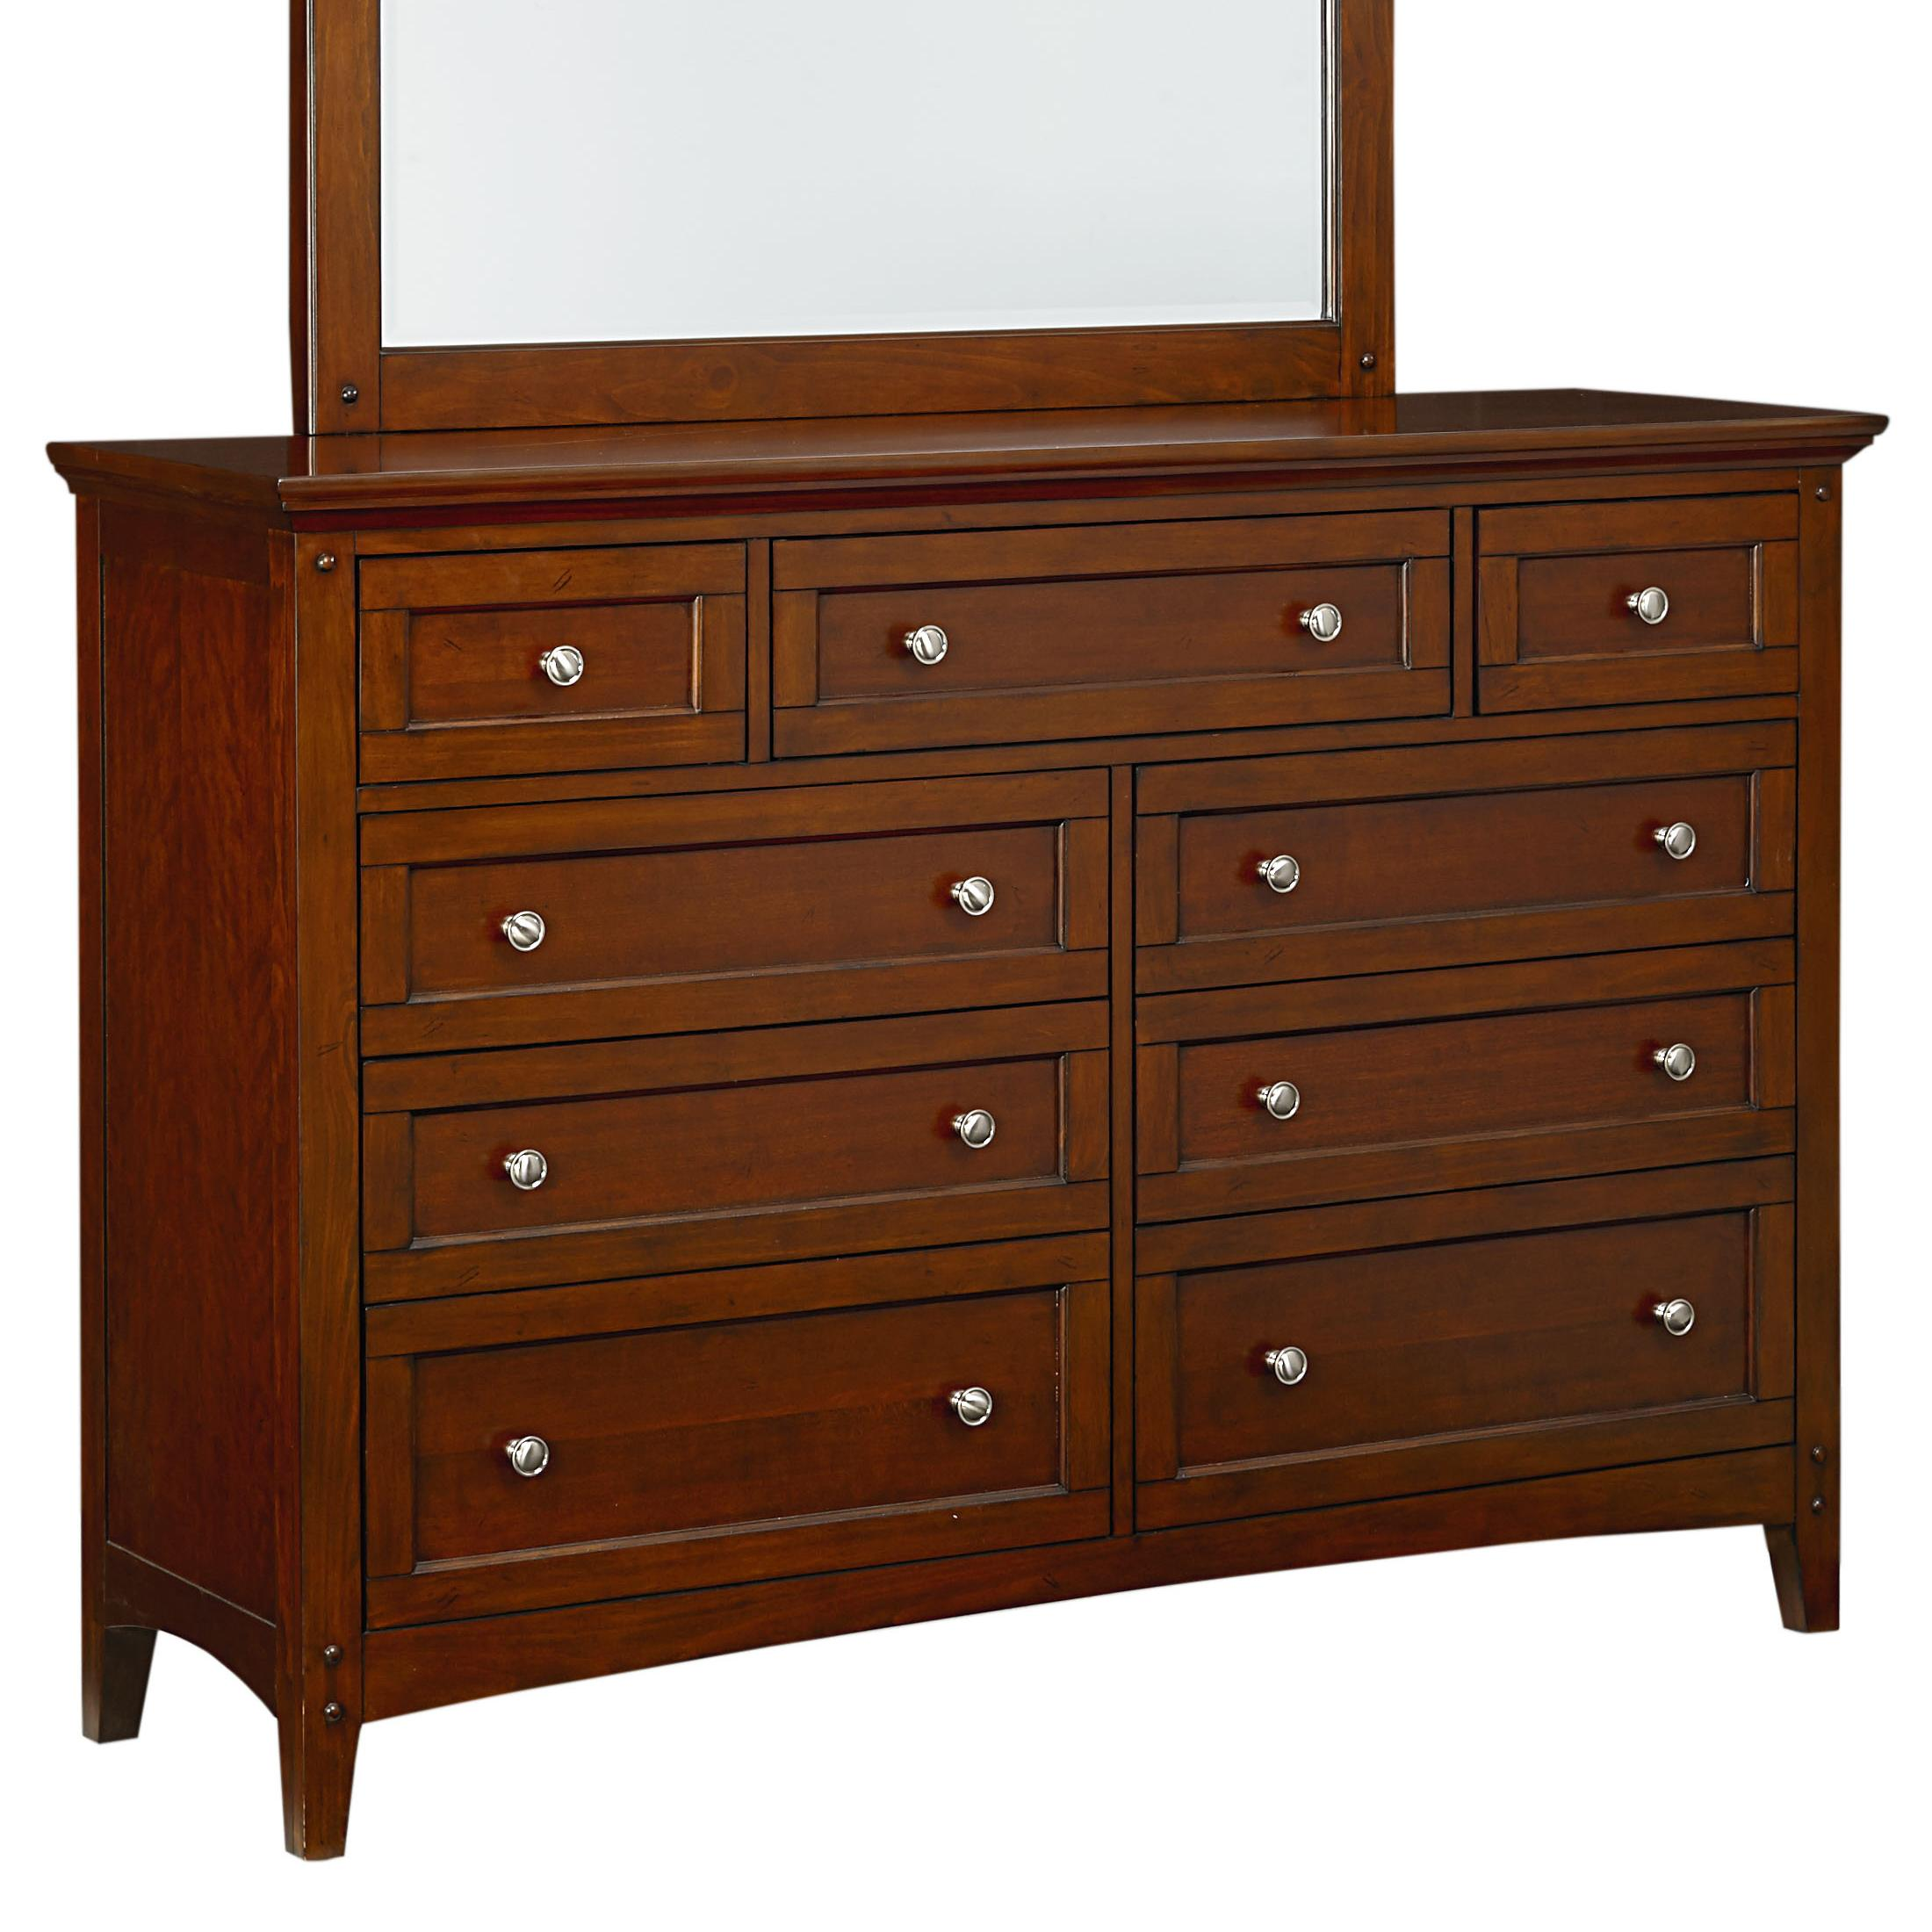 Standard Furniture Cooperstown Dresser - Item Number: 93809